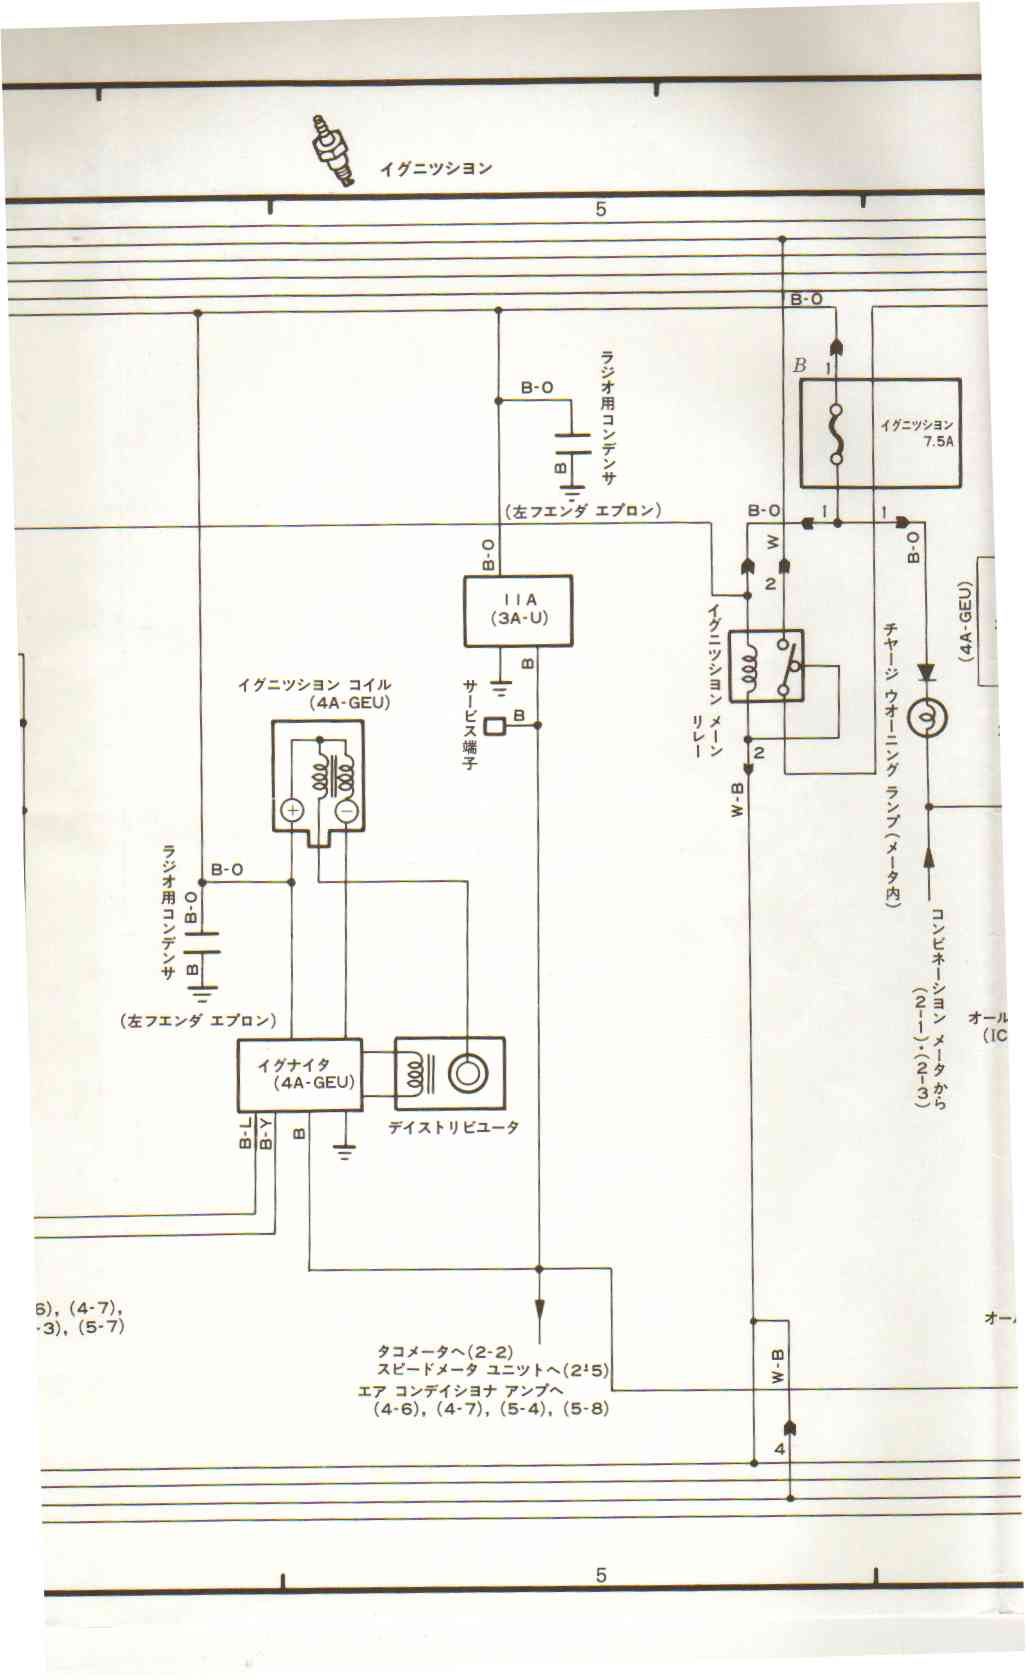 Ecu Ae86 4a Ge Japan Power Supply Schematic Diagram Likewise Switching Wiring